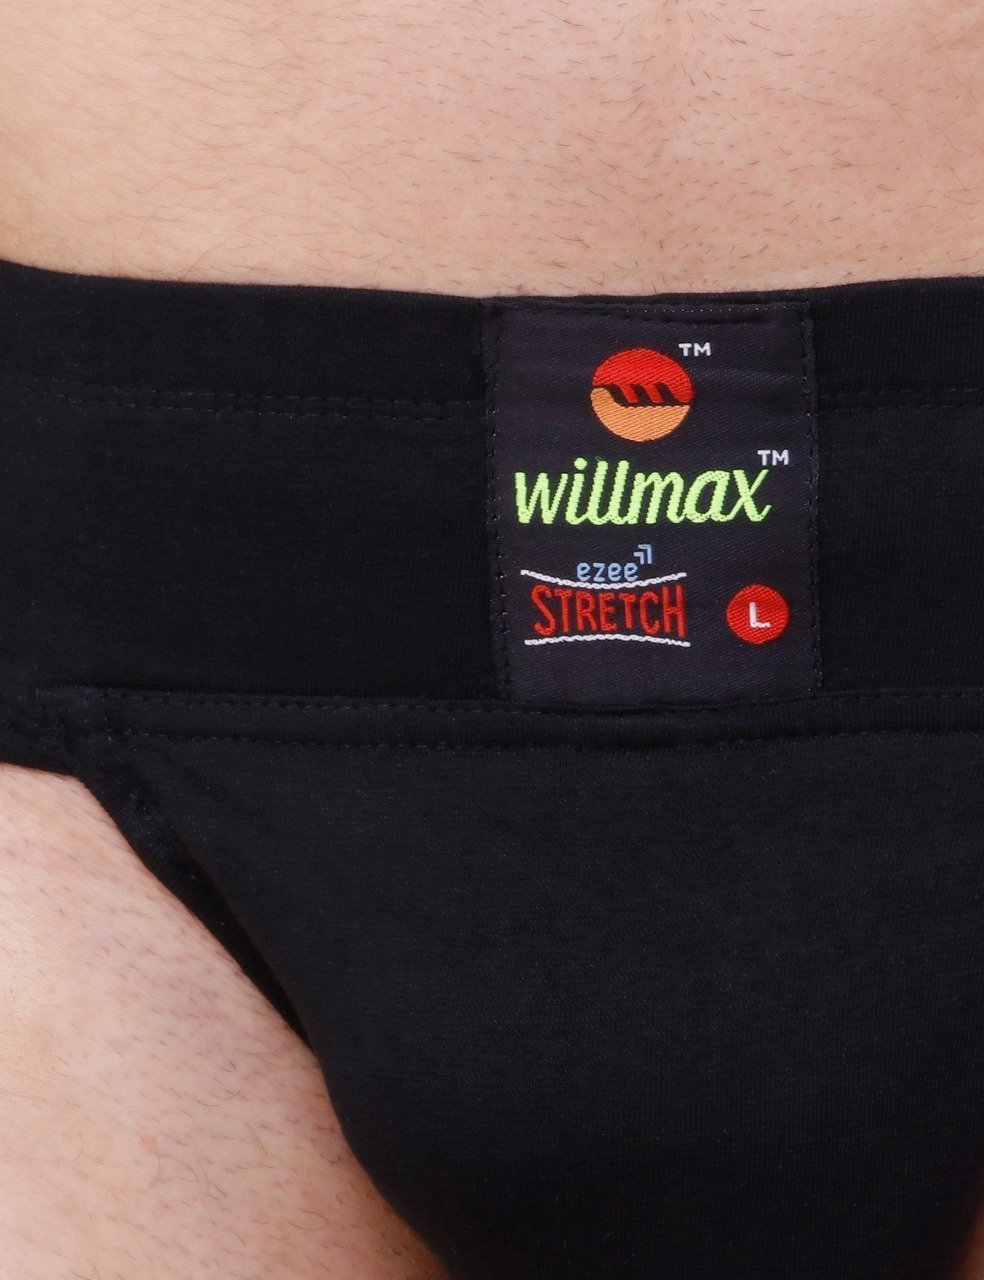 Pack of 1 KD Willmax Gym Cotton Supporter Back Covered